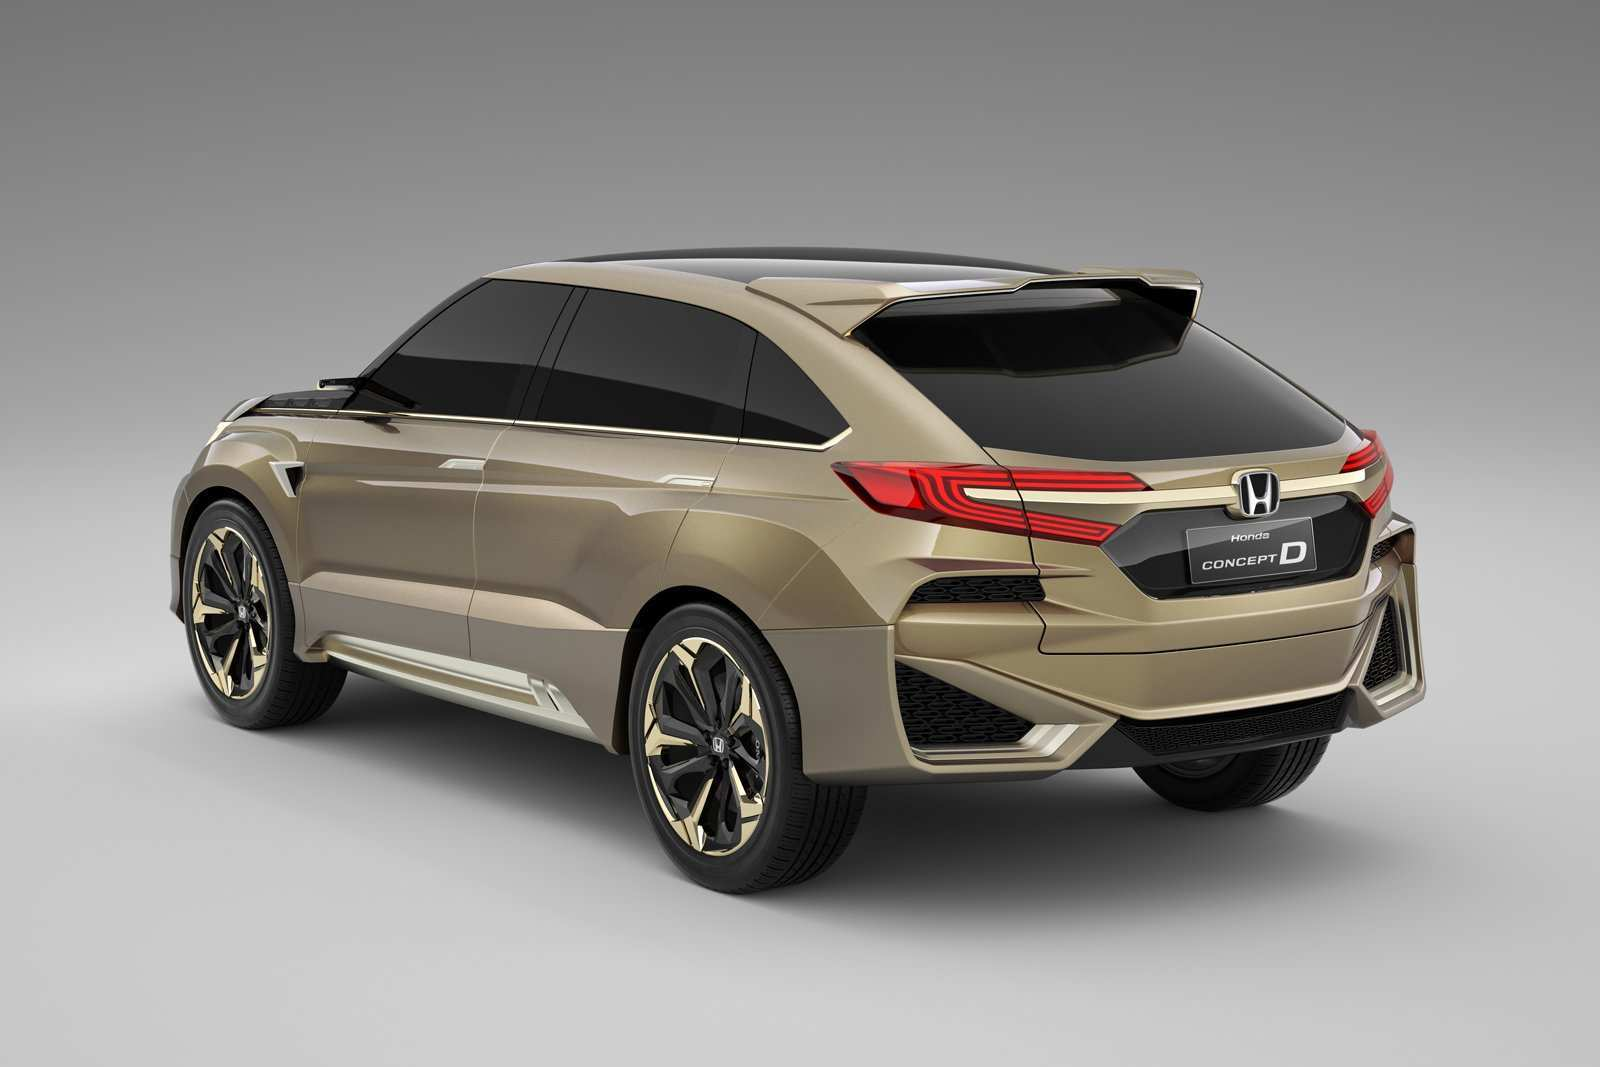 93 Best Review When Will 2020 Acura Mdx Be Released Exterior for When Will 2020 Acura Mdx Be Released